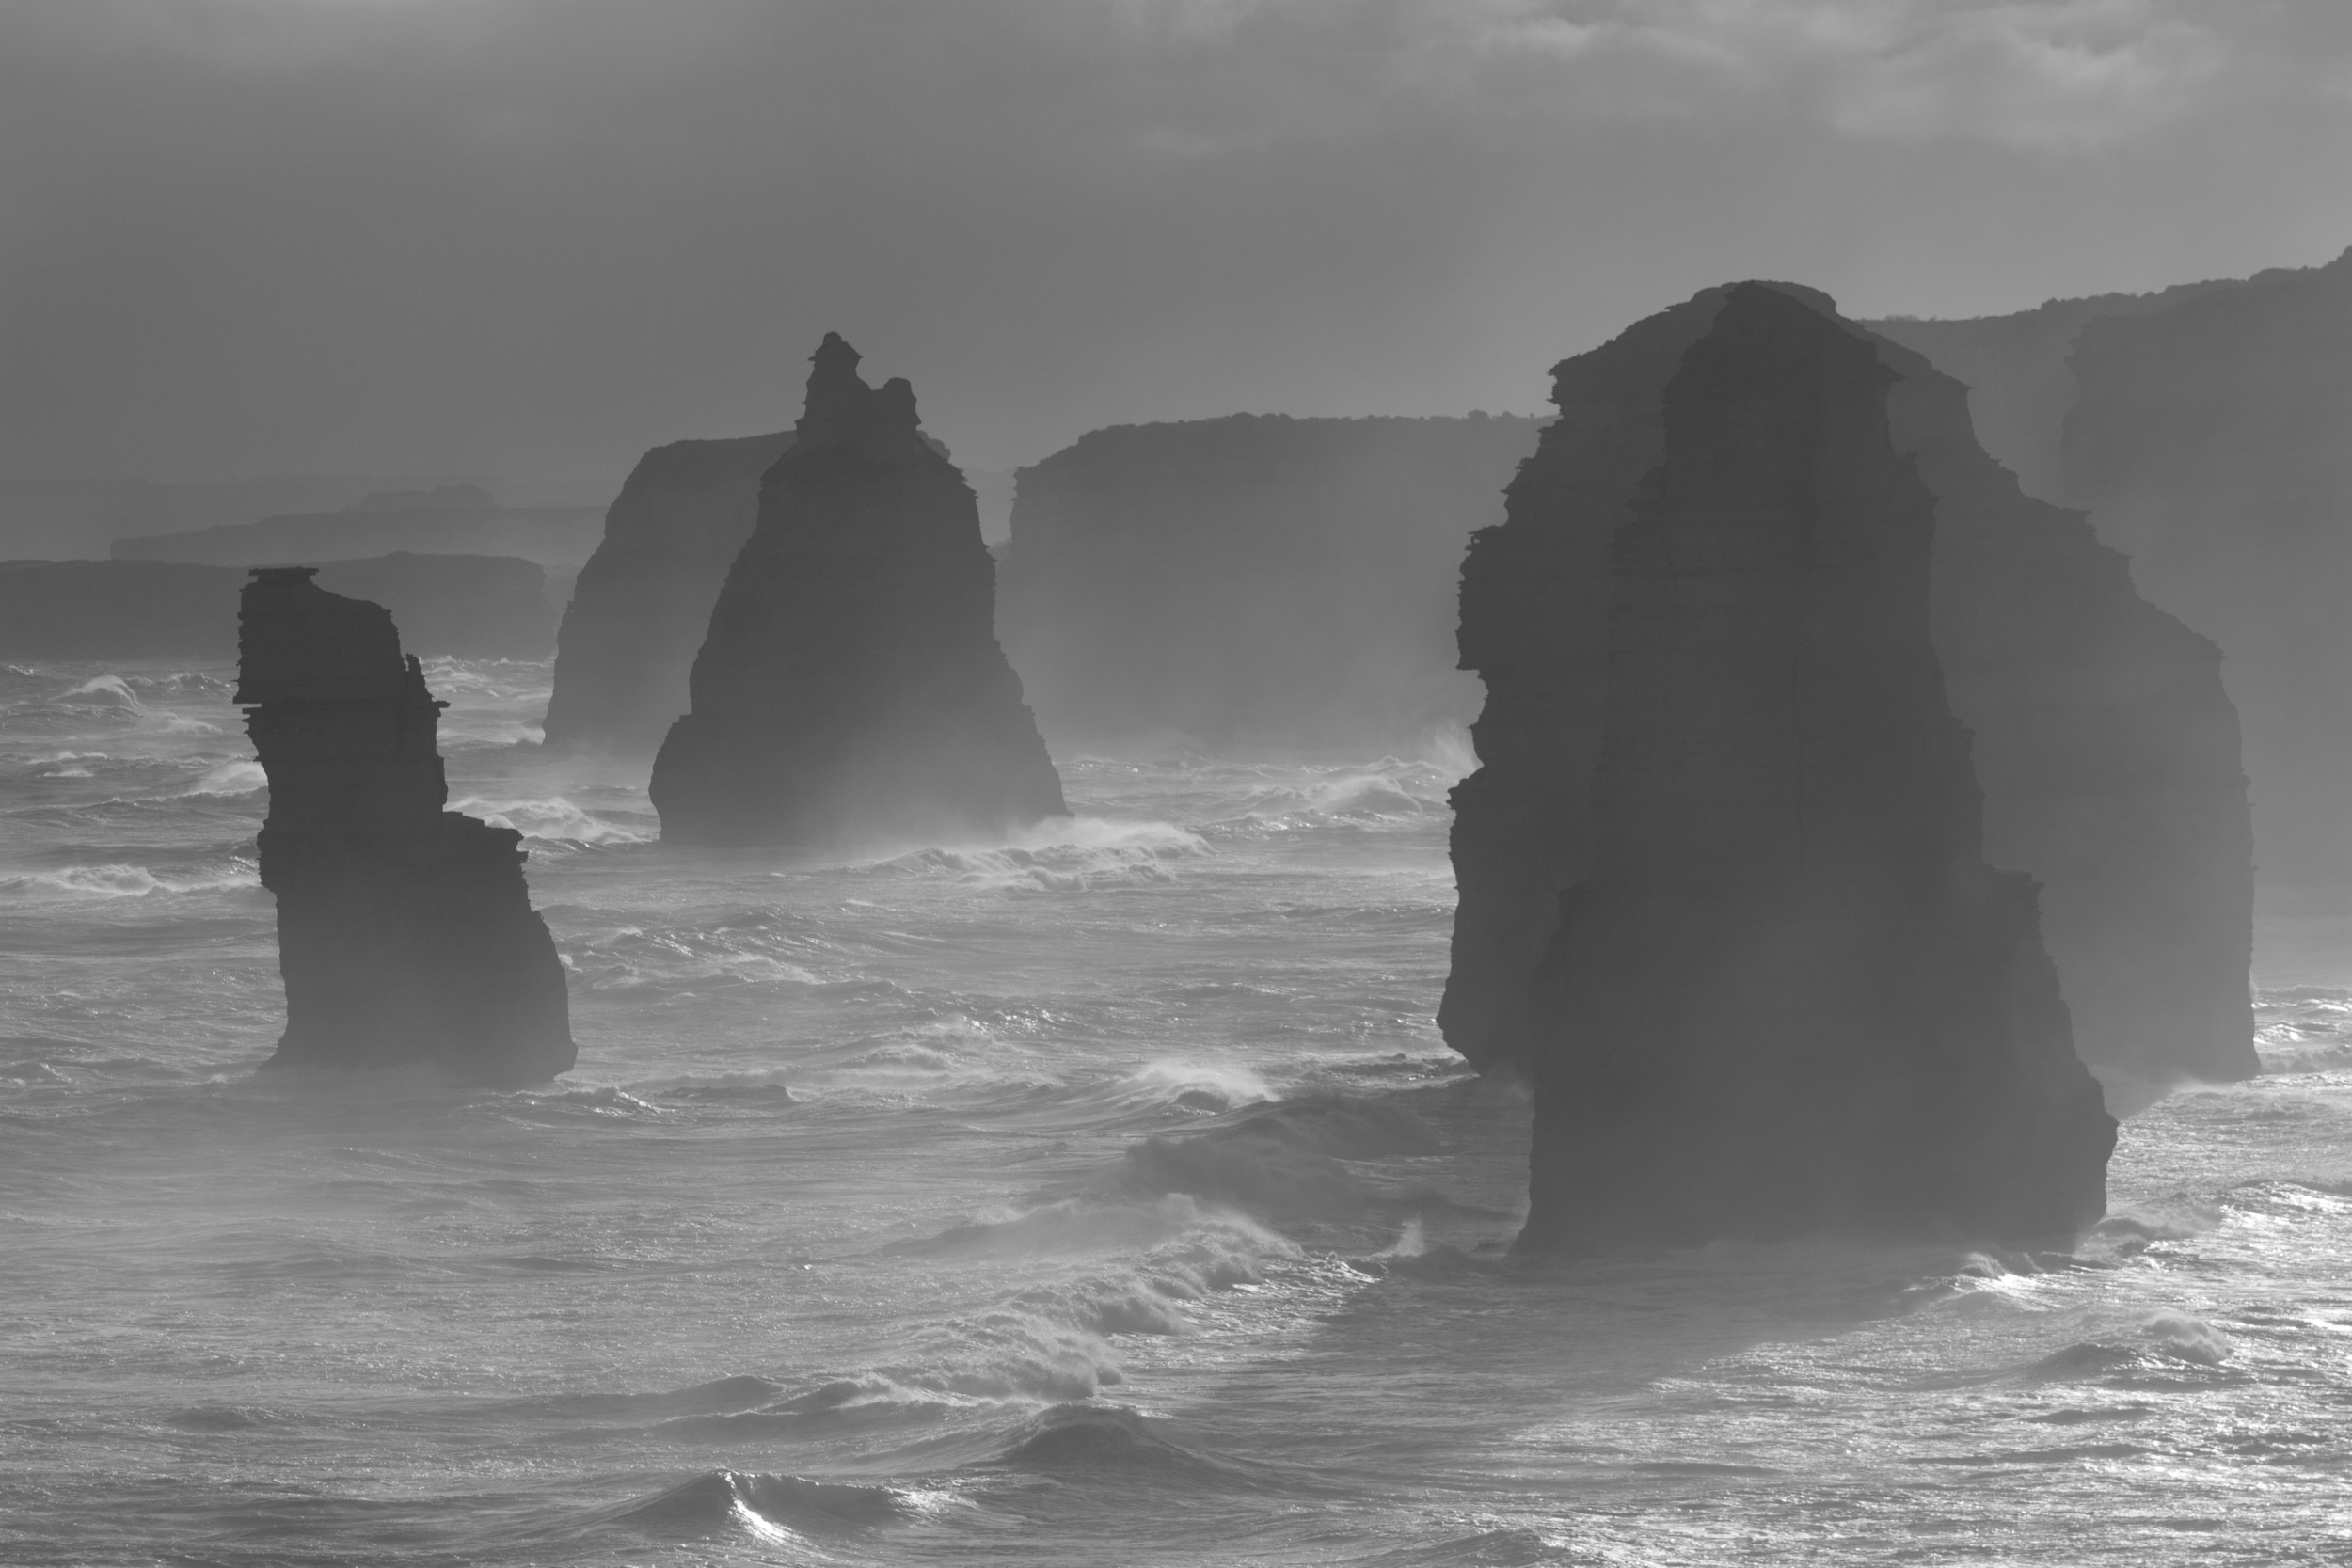 12 Apostles in Australia. With nature like this, it is hard to not take a good picture! So says Aaron.